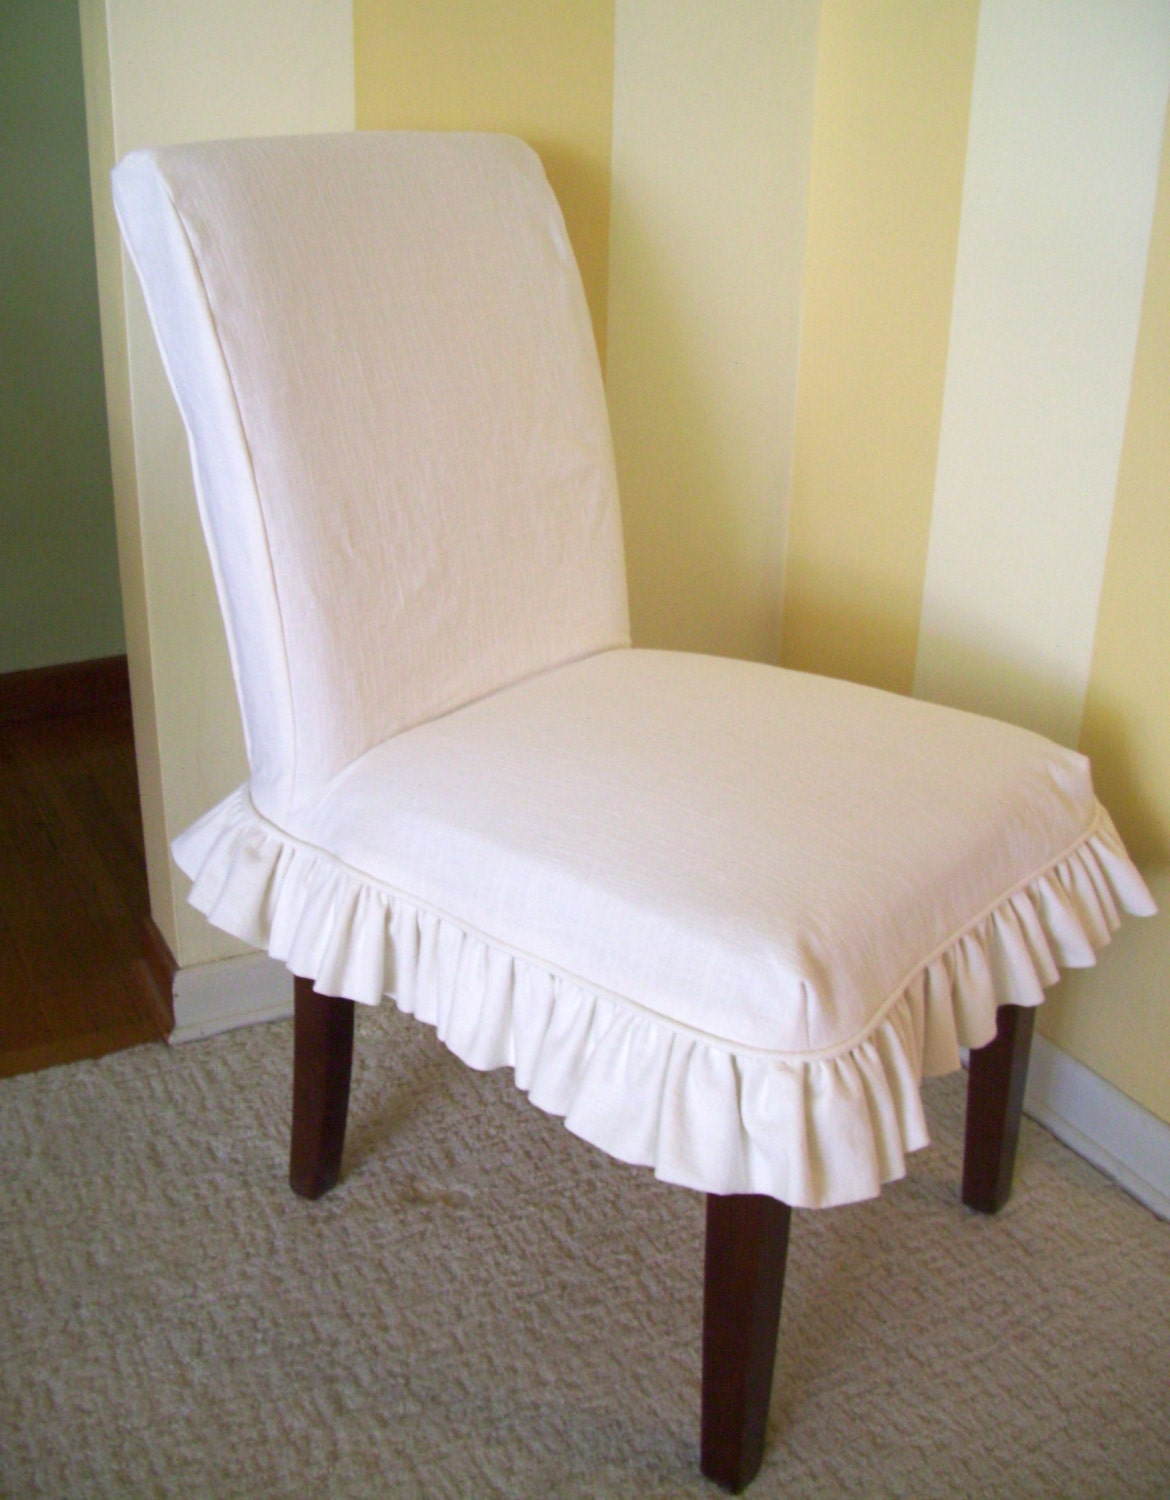 Linen Parsons Chair Slipcover Ruffled Skirt Dining Chair : ilfullxfull586554903t16u from www.etsy.com size 1170 x 1500 jpeg 324kB